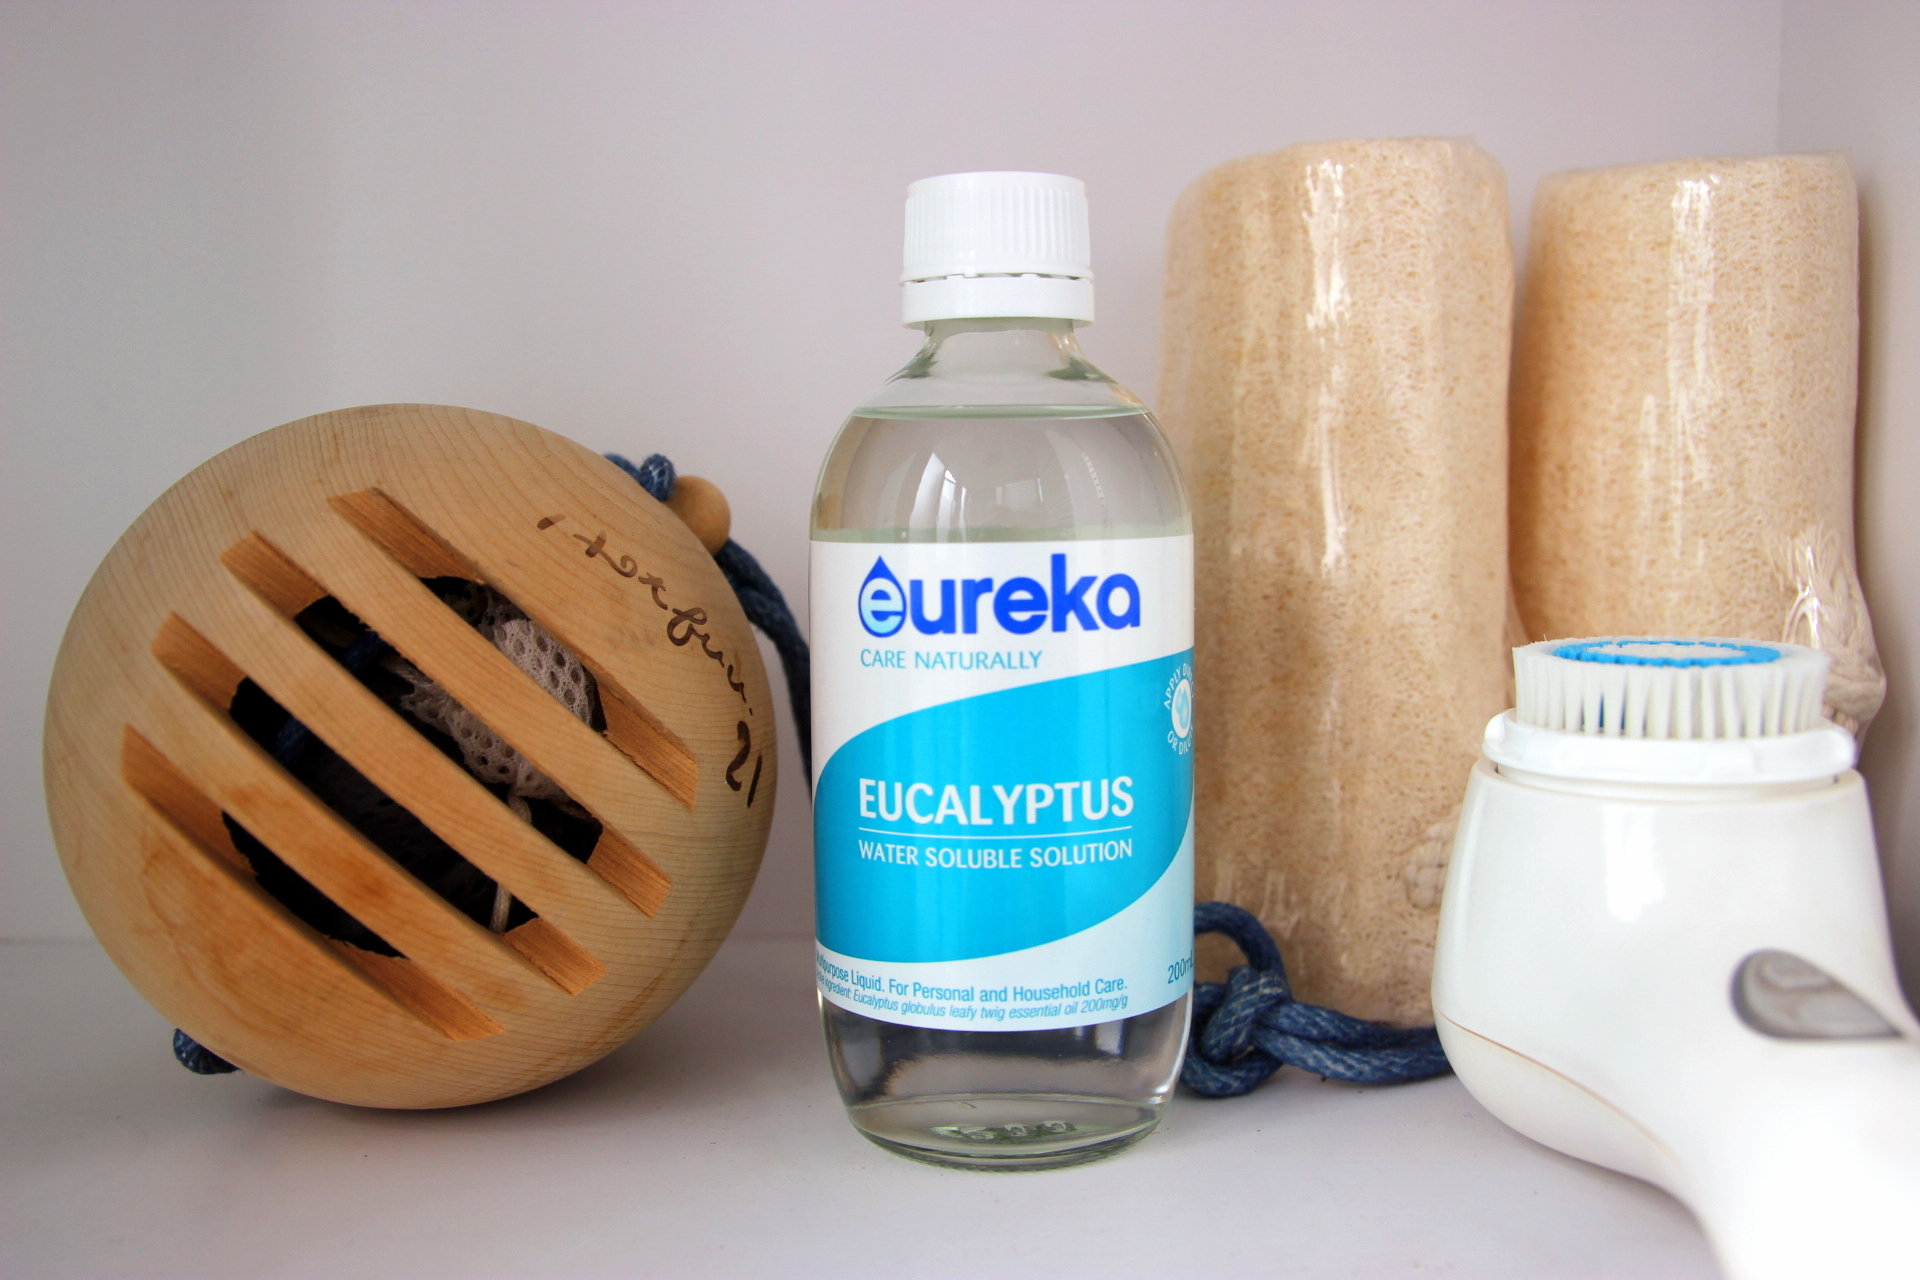 Eucalyptus Water Soluble Solution